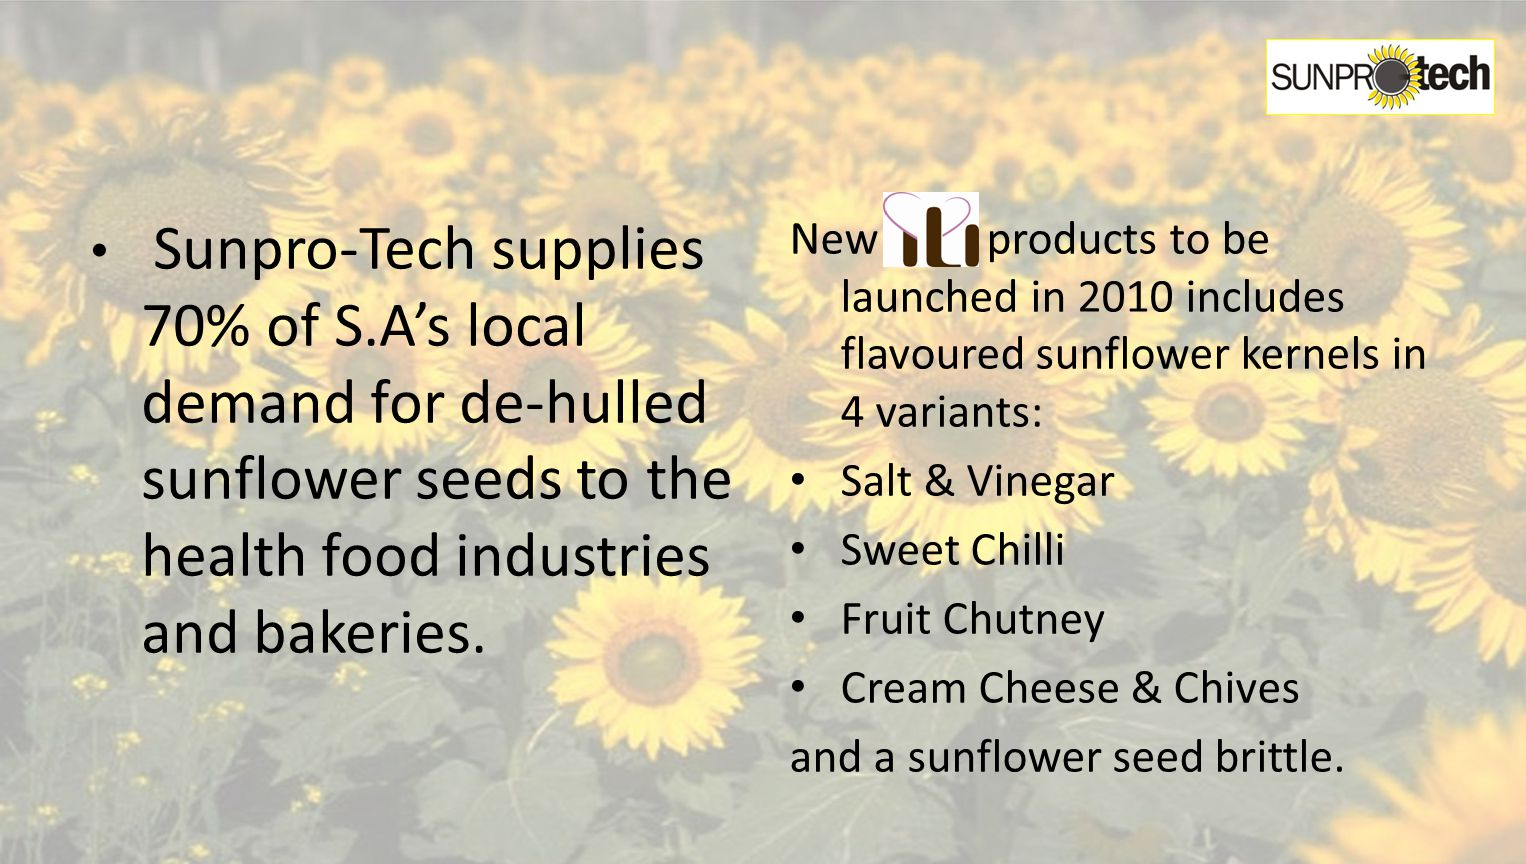 Sunpro-Tech supplies 70% of S.As local demand for de-hulled sunflower seeds to the health food industries and bakeries.